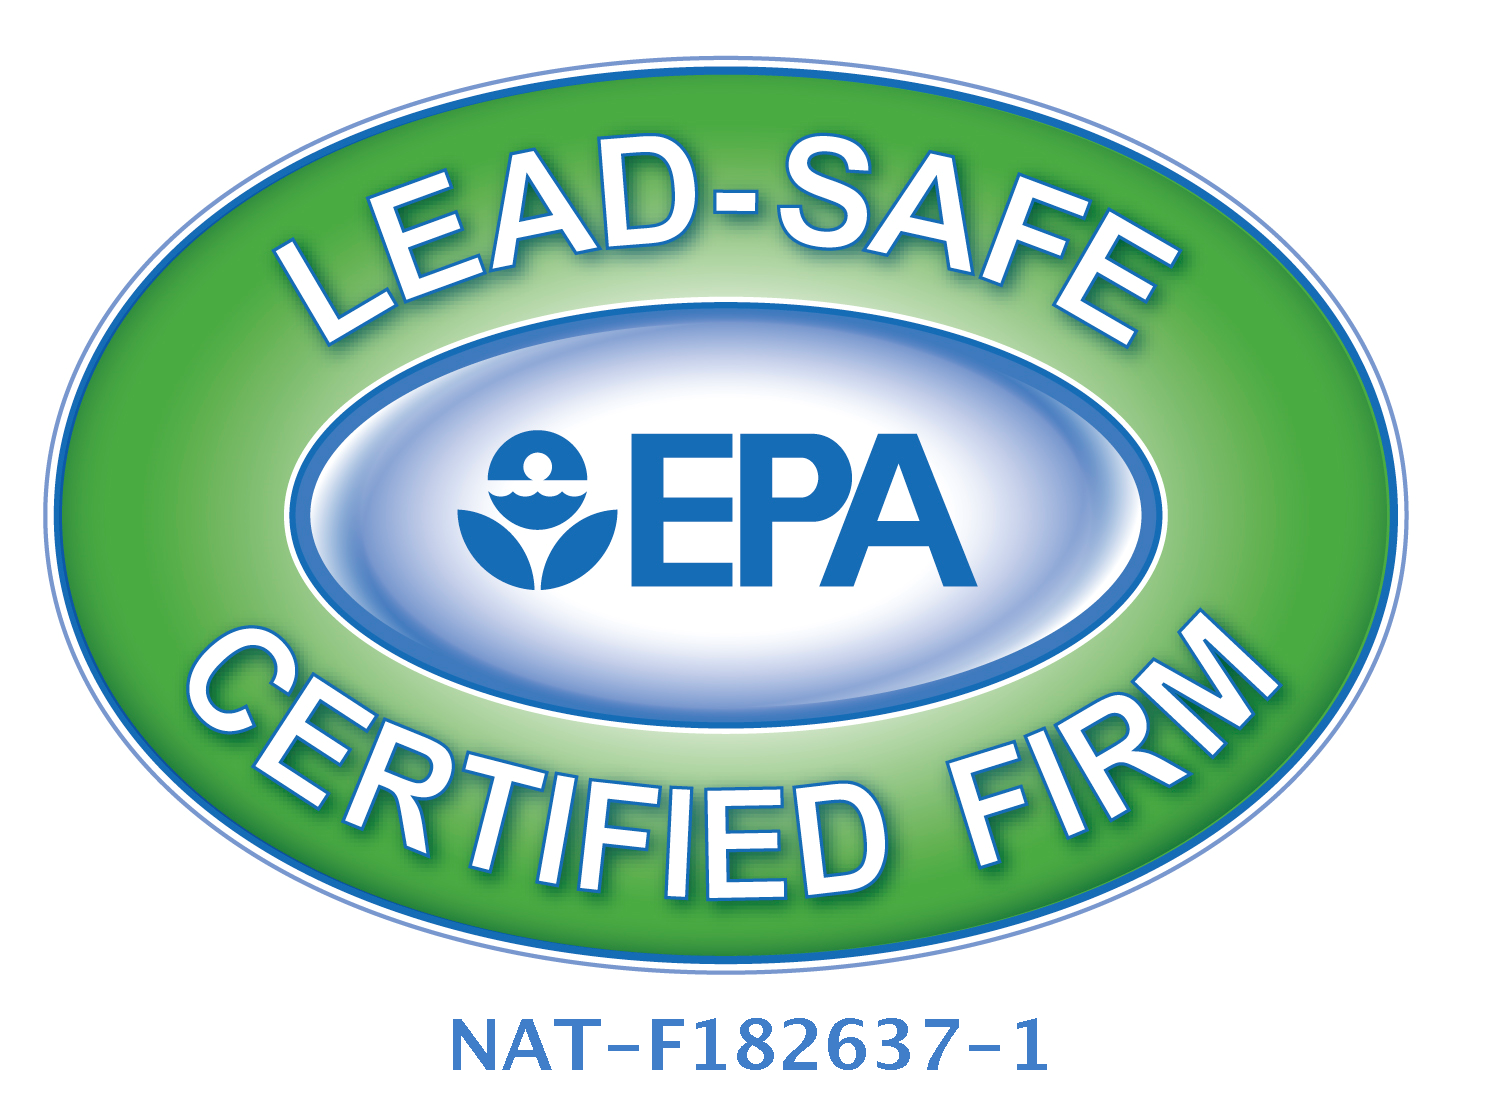 "County View Contracting Named ""Lead-Safe Certified Firm"" by the EPA"